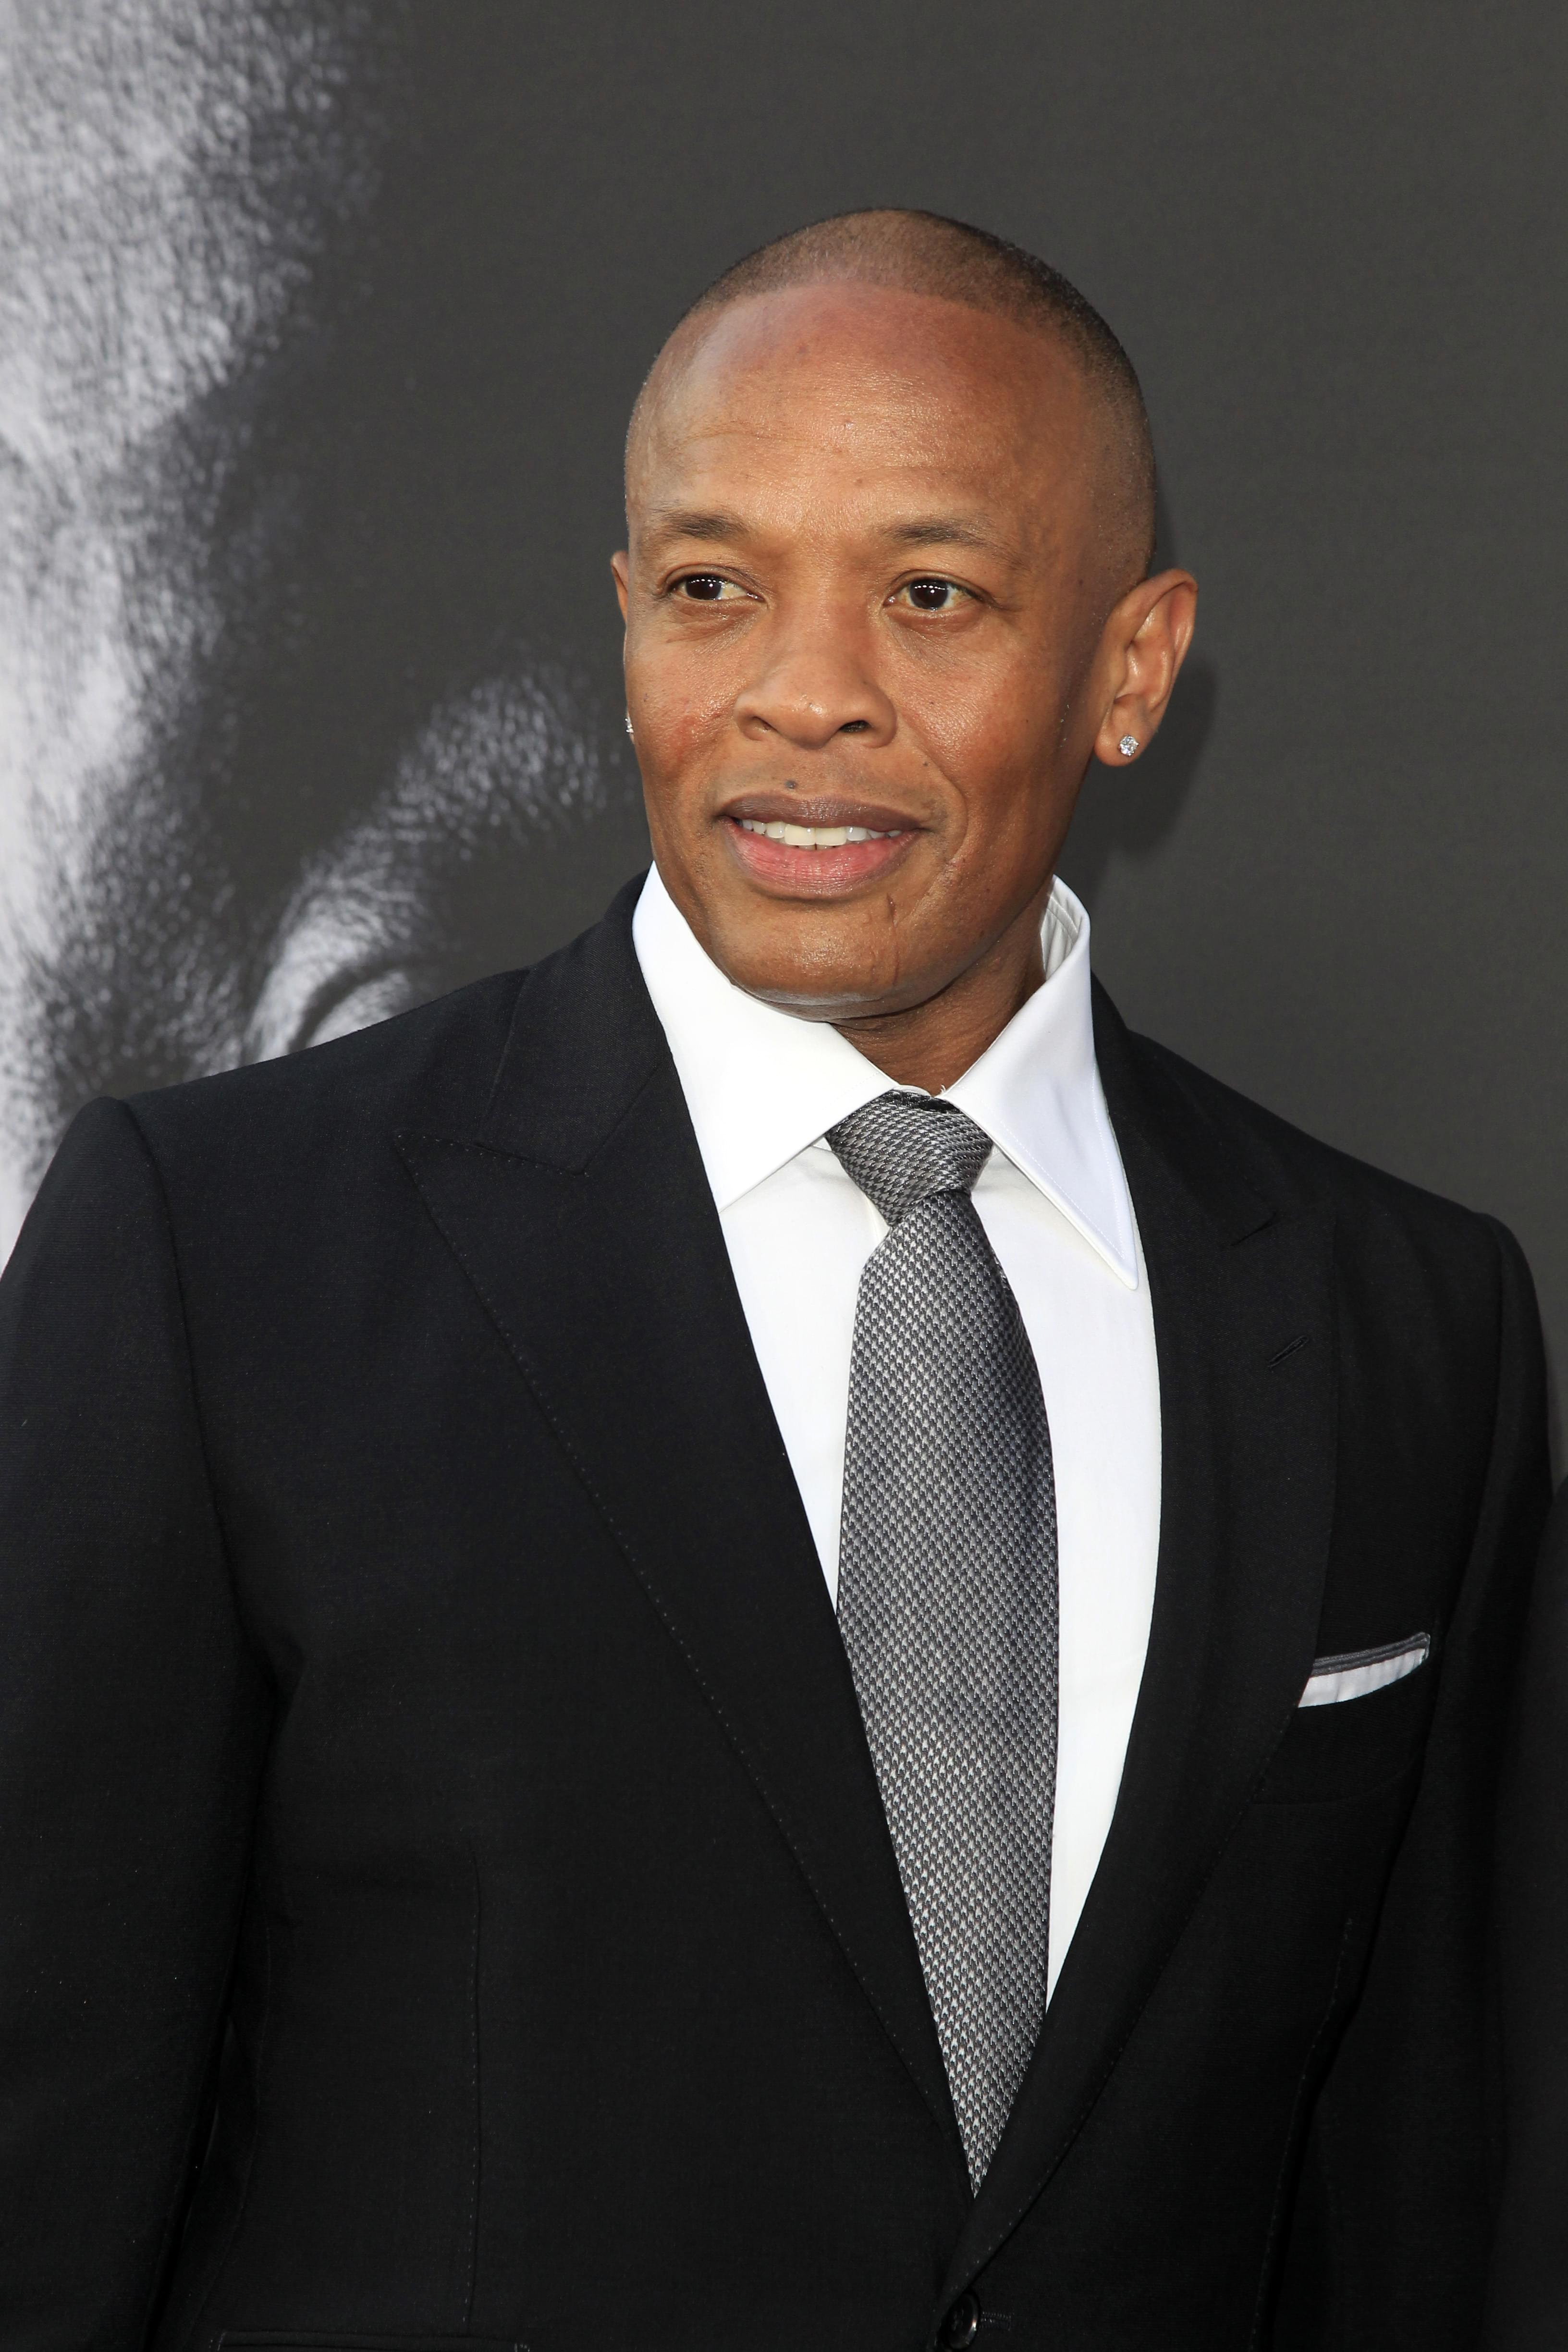 Dr. Dre in ICU after Suffering An Aneurysm